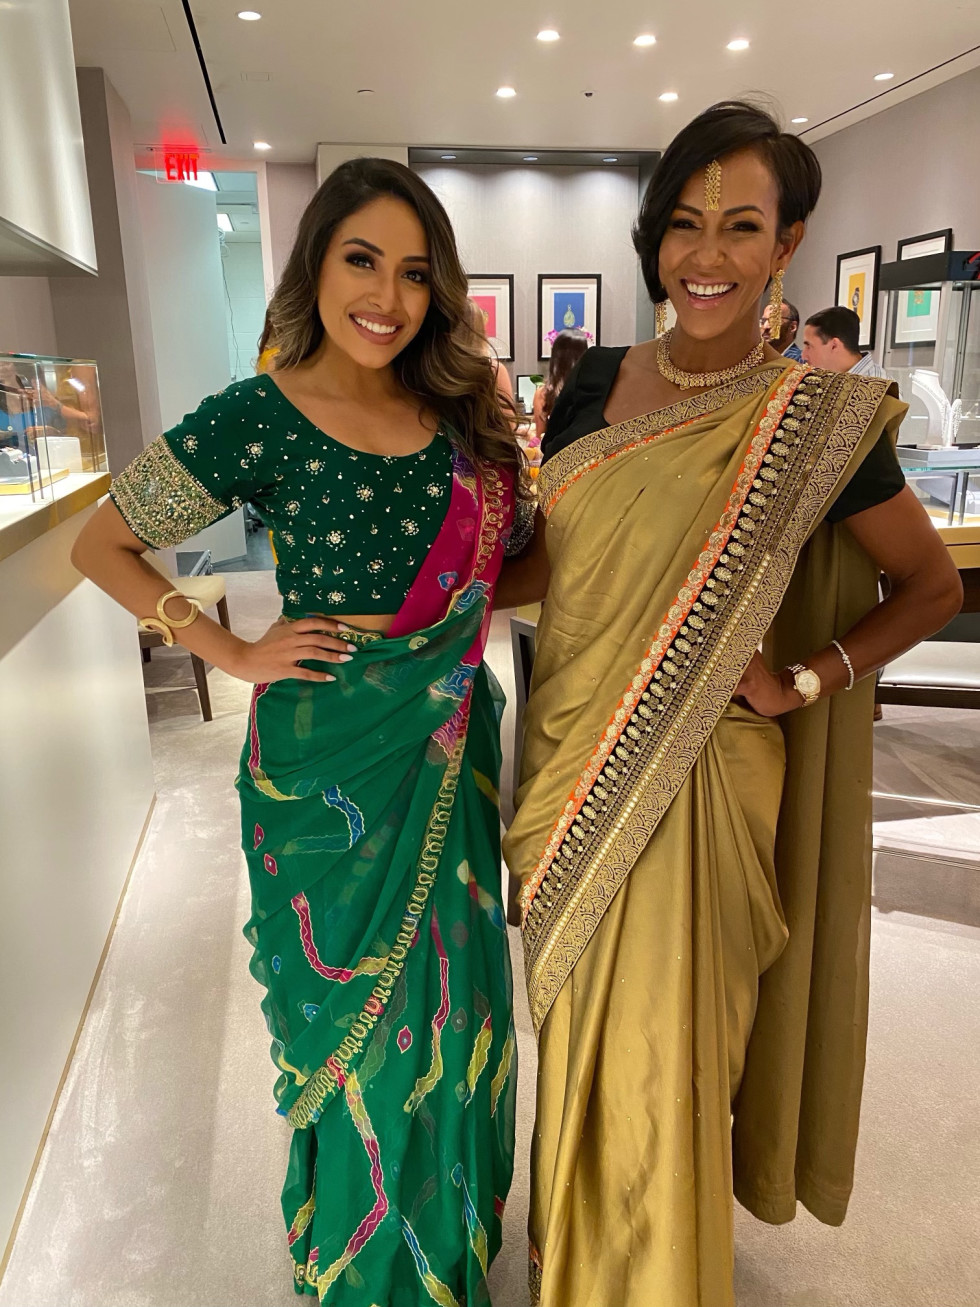 LCA Houston Faberge Diwali 2020  Brisehyda Cheung and Milka Waterland